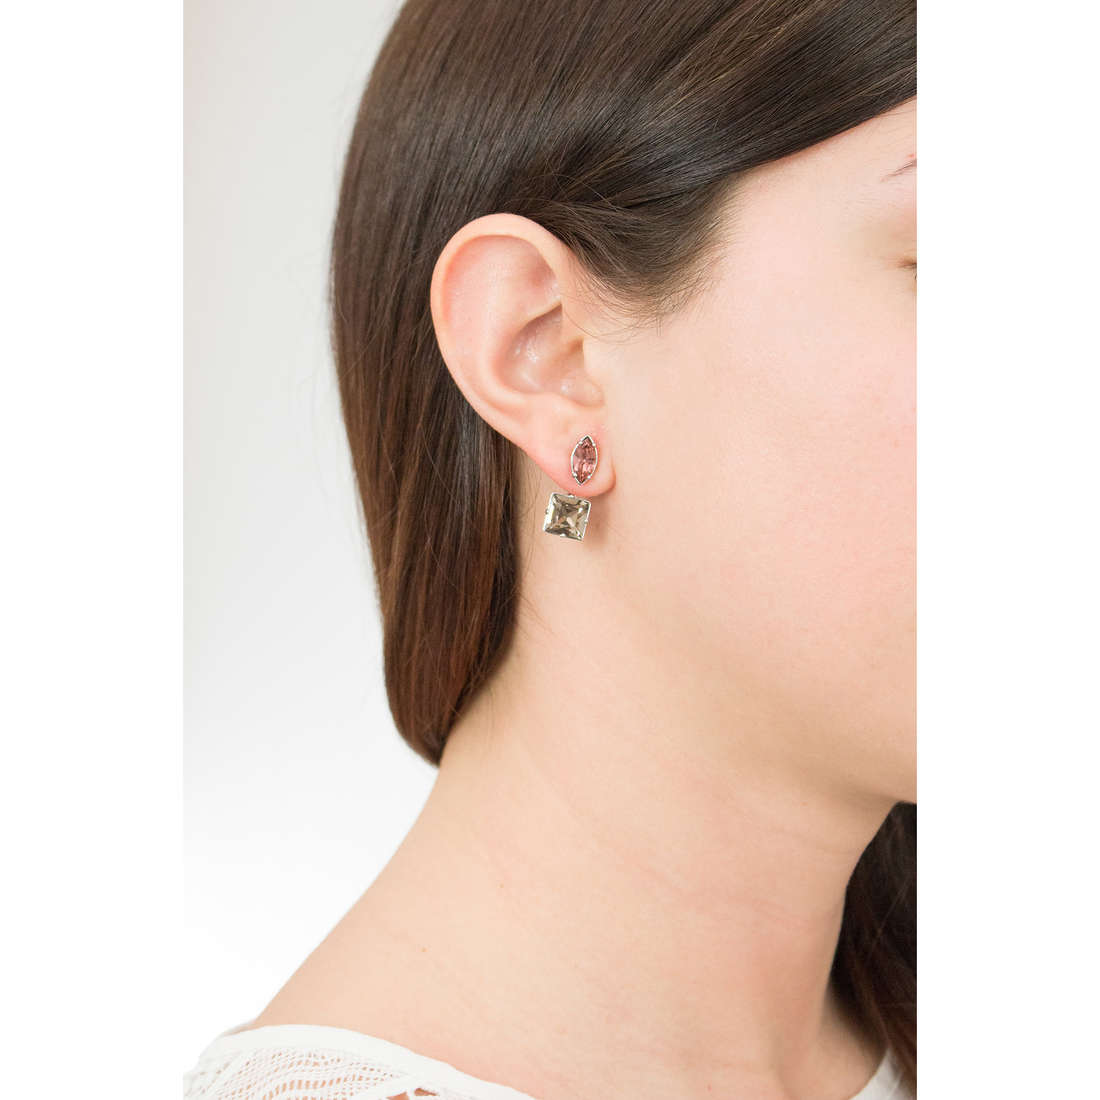 Brosway boucles d'oreille Affinity femme BFF47 photo wearing